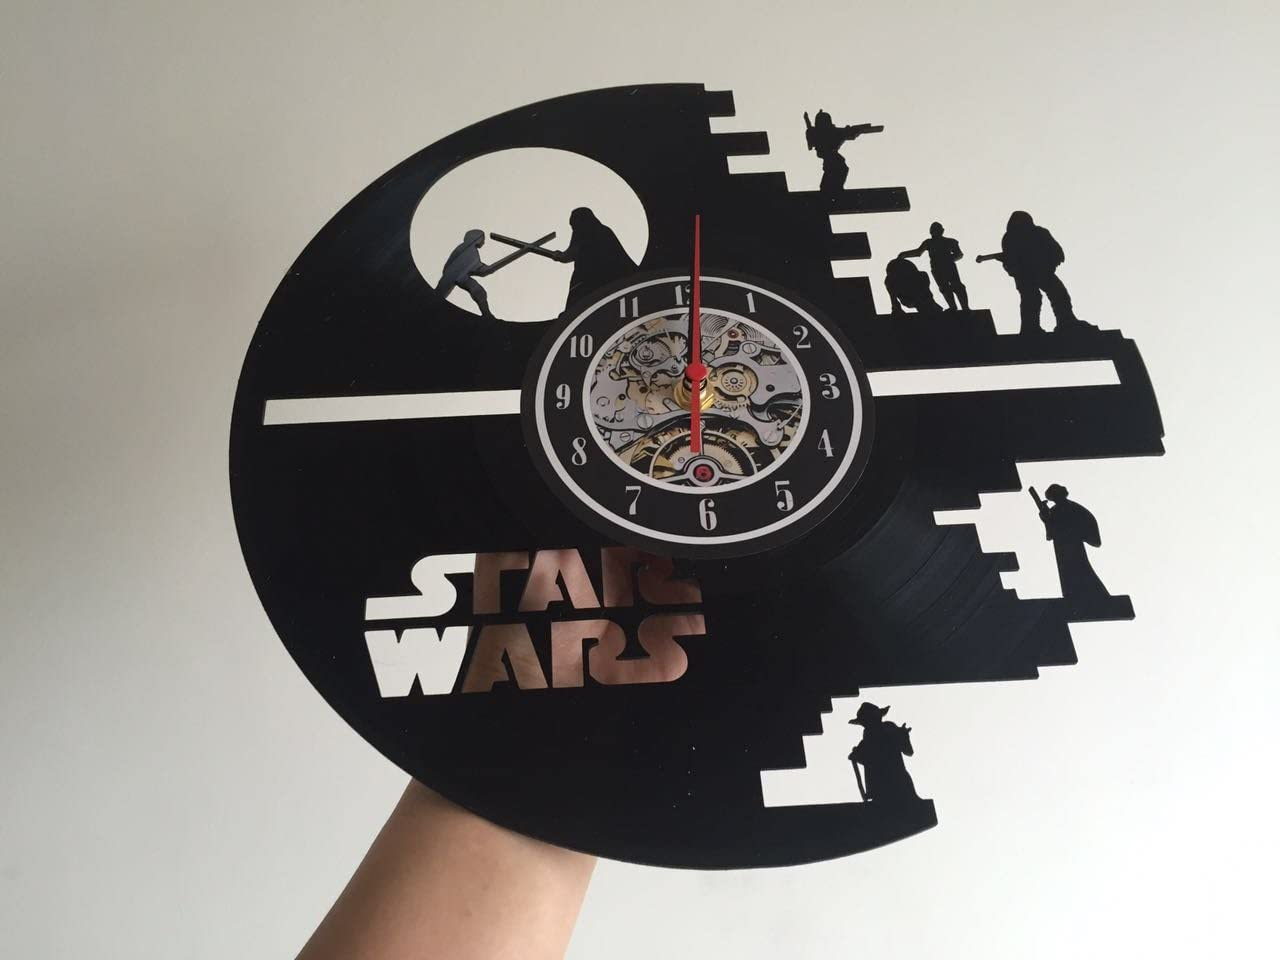 Vinyl Record Vintage Wall Clock Gift for Star Wars Lovers